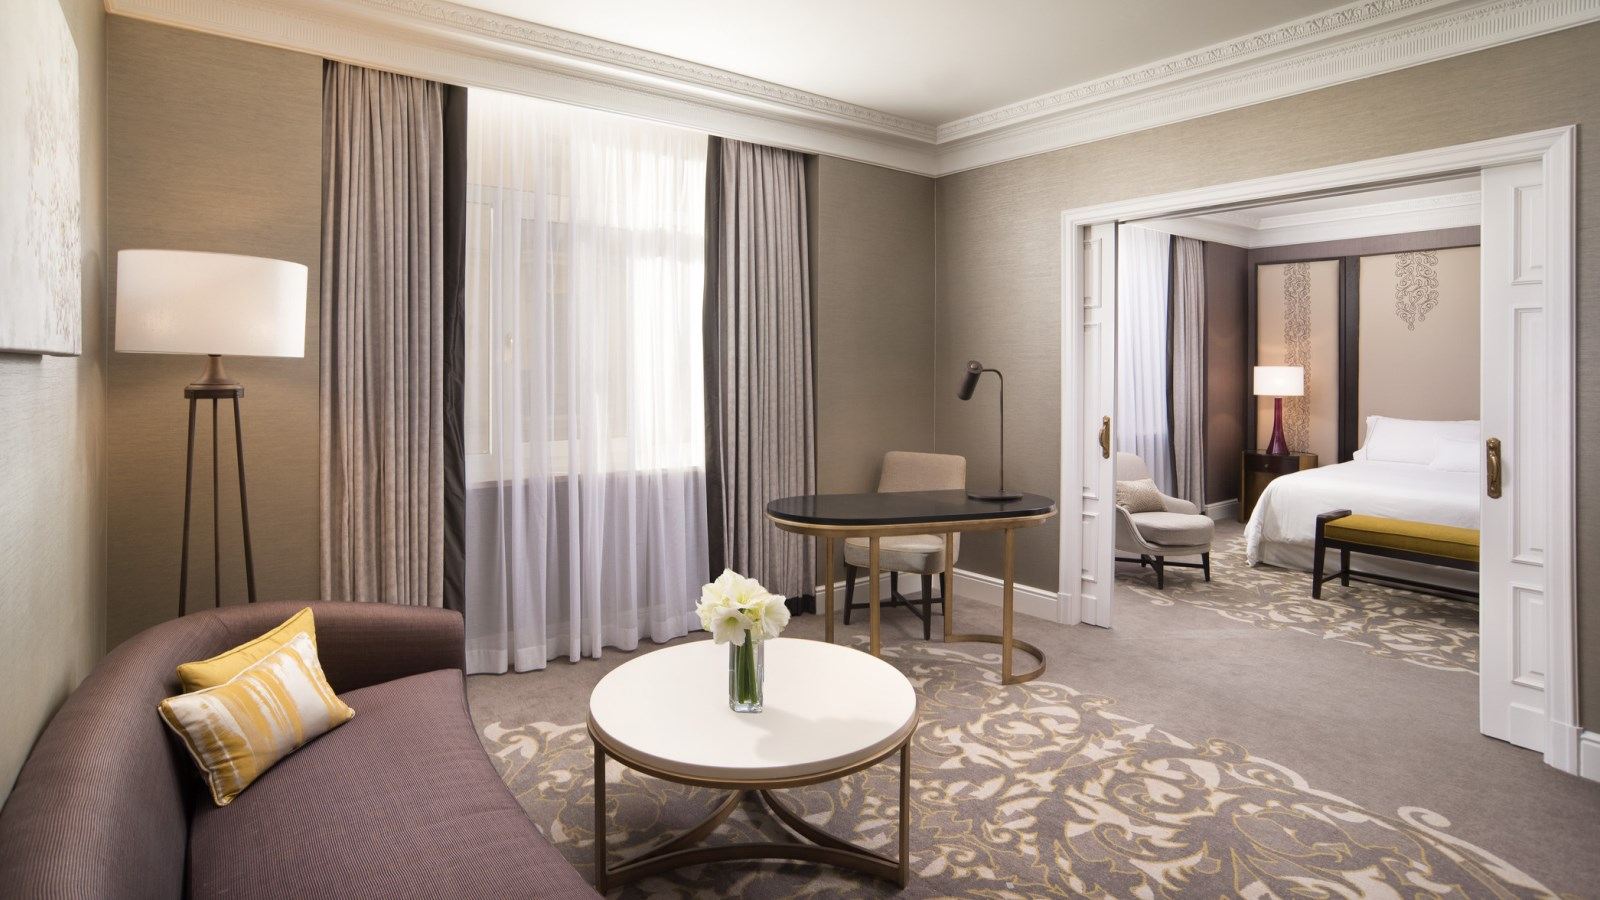 RENEWED ROOMS AND SUITES AT THE WESTIN PALACE, MADRID